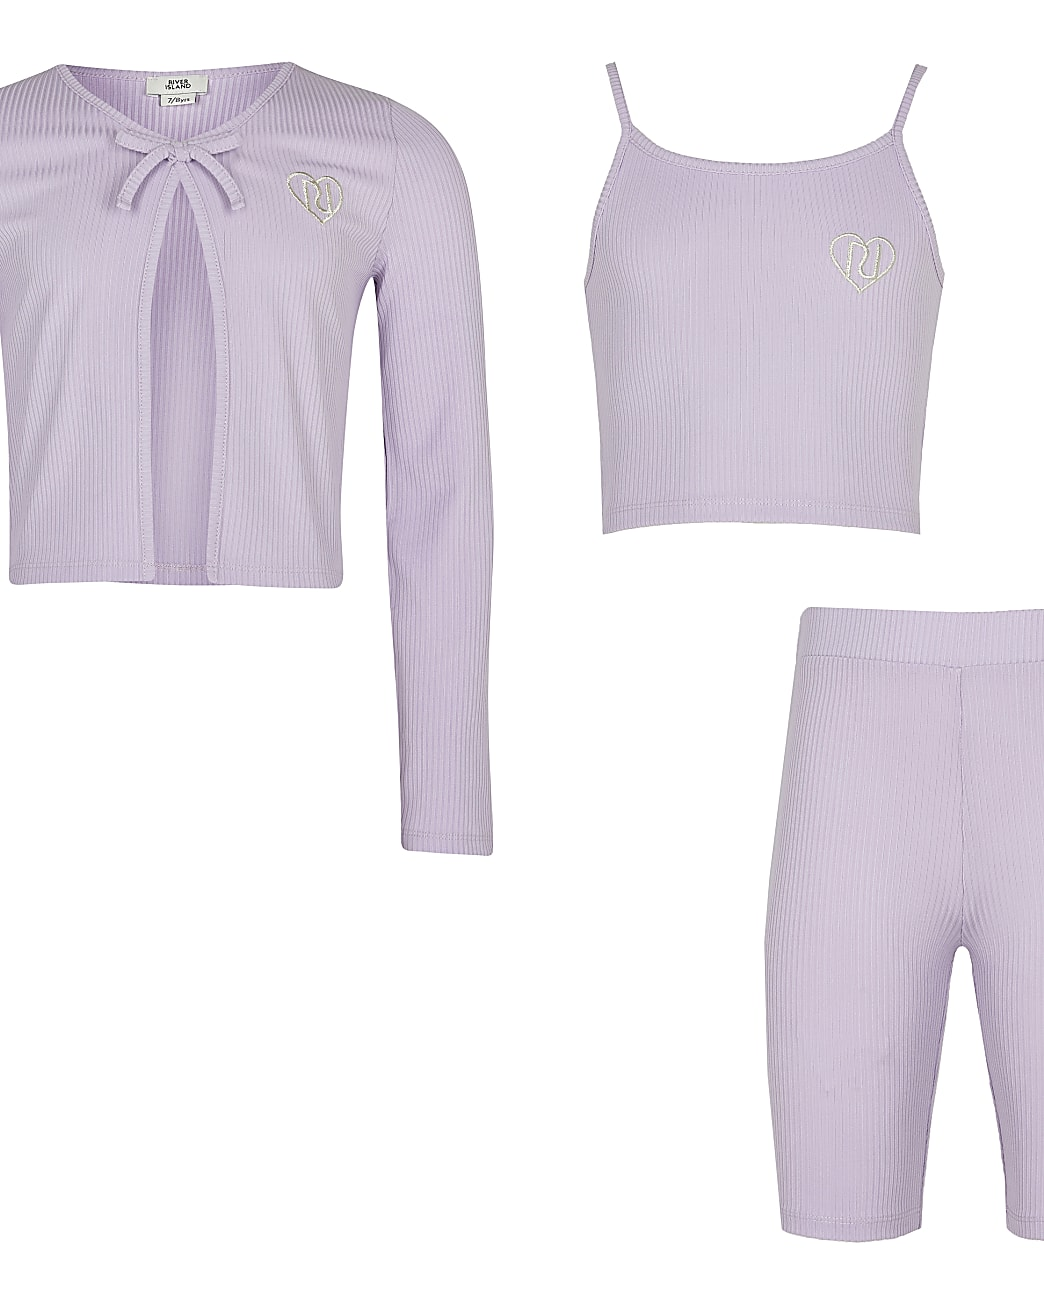 Girls purple ribbed cardigan 3 piece outfit